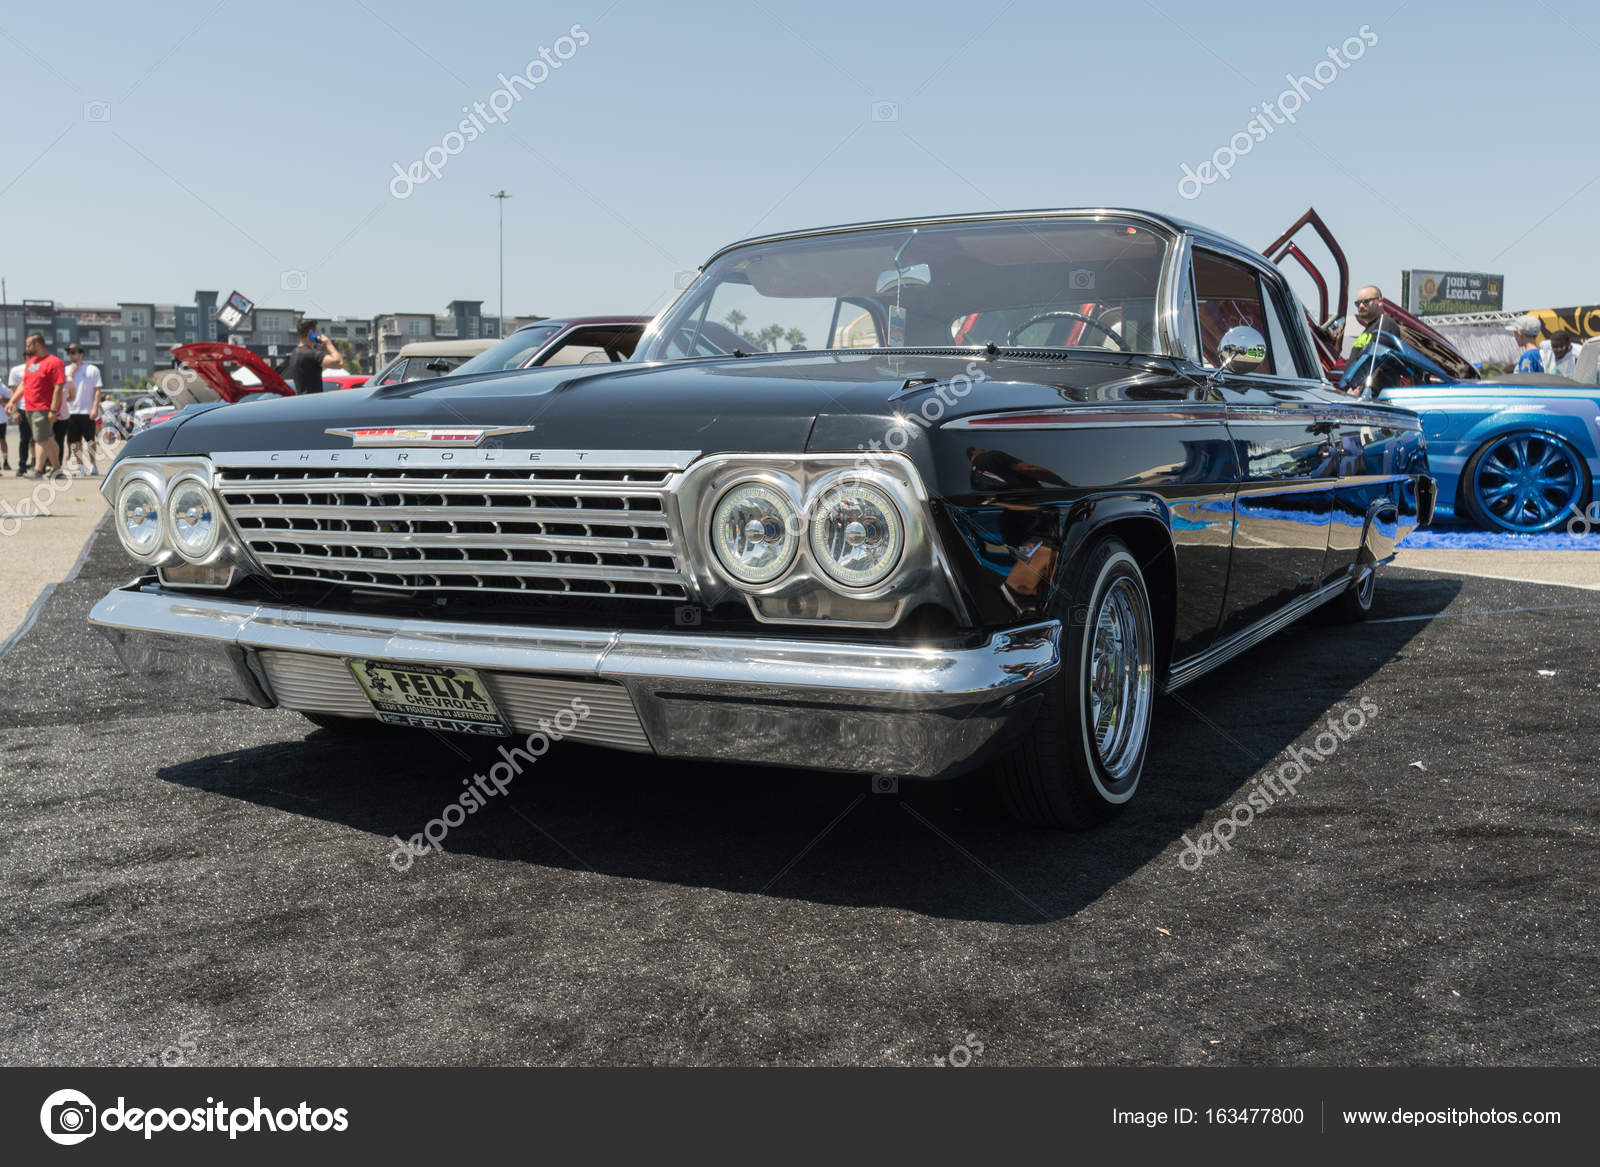 Chevrolet Impala On Display During DUB Show Tour Stock Editorial - Angel stadium car show